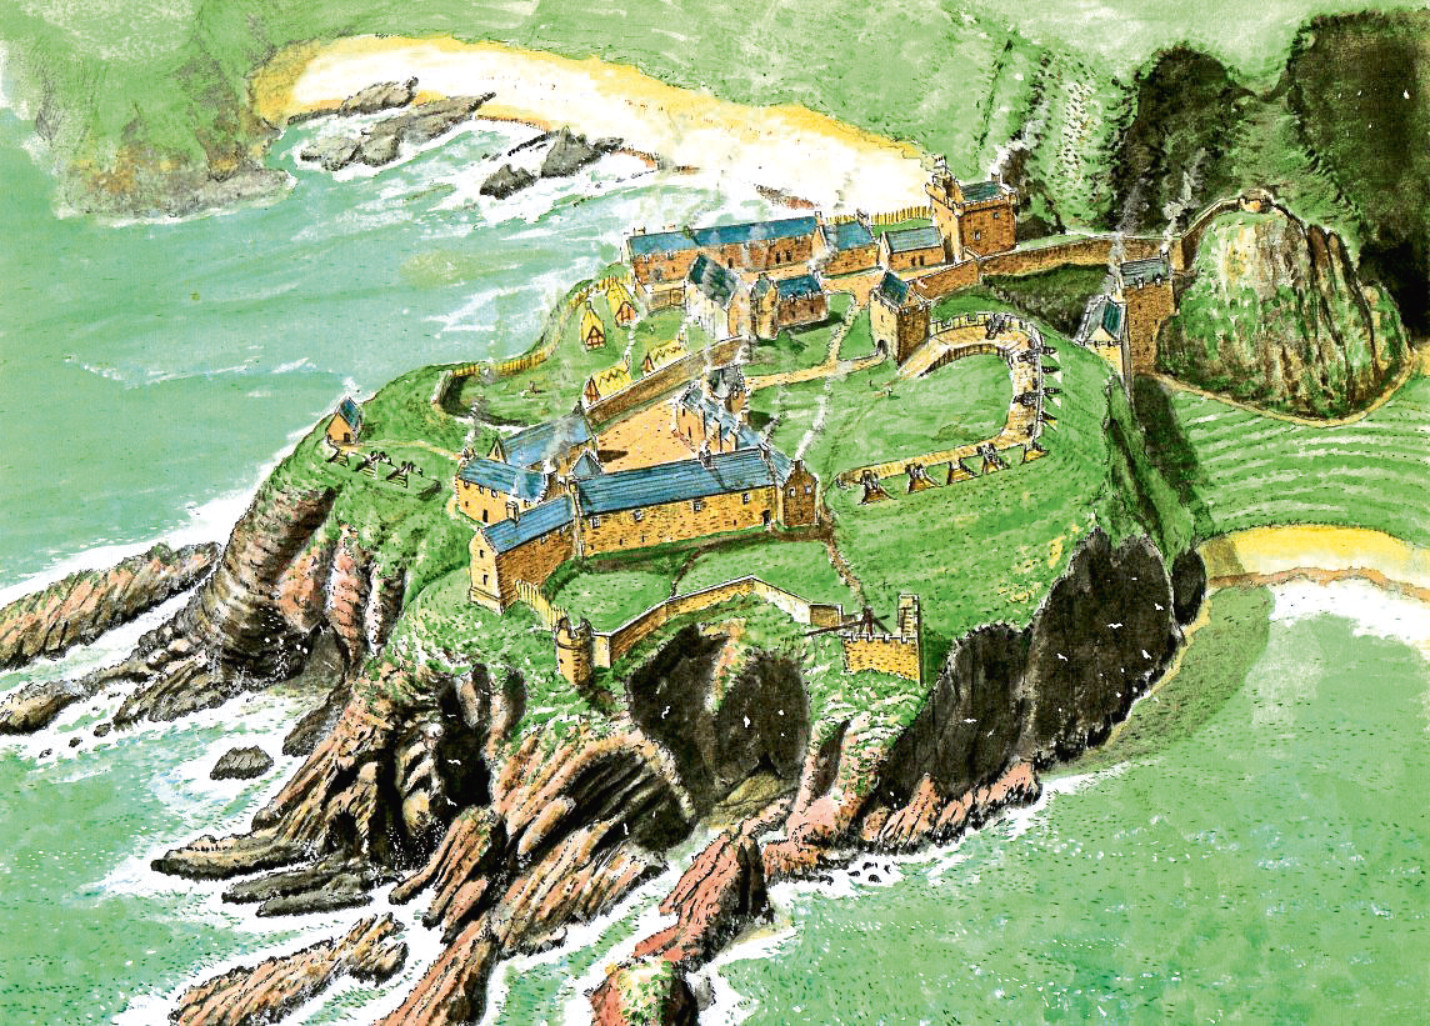 Pictures of Andrew Spratt recreations of Old Slains in watercolour.